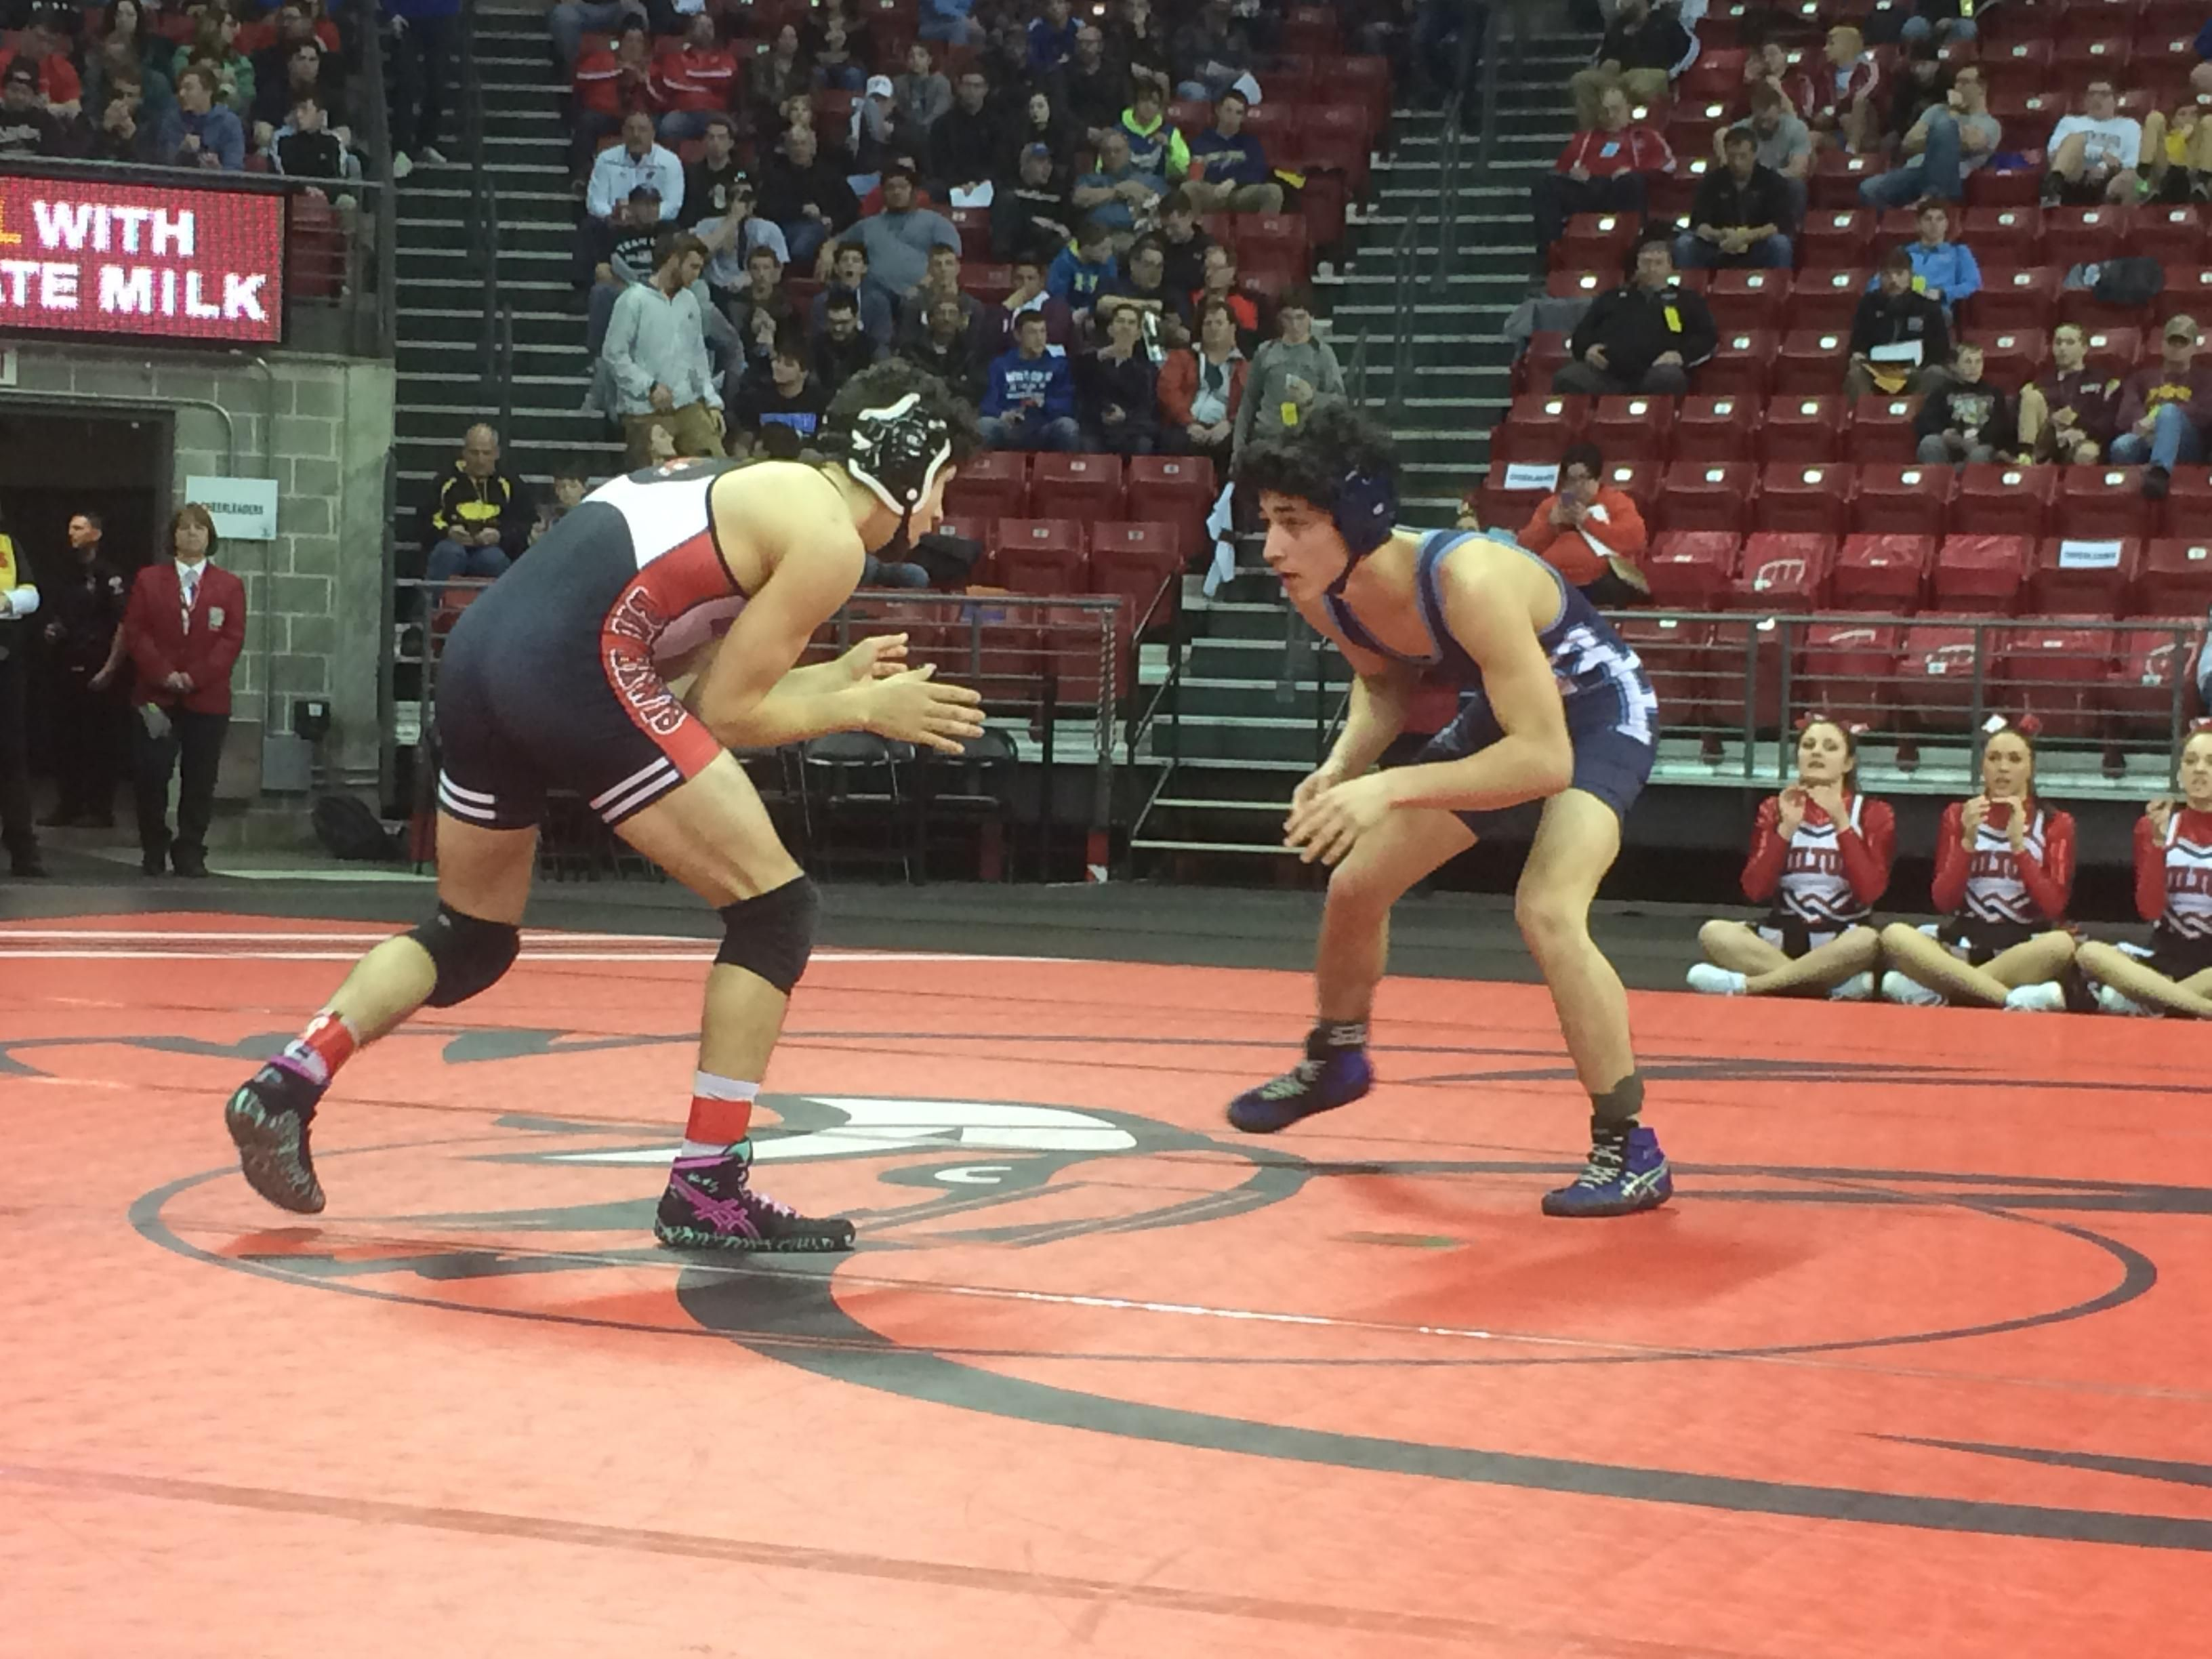 Bay Port senior Brady Shulfer won a 6-1 decision over Milton junior Vince Digennaro in a 145-pound Division 1 preliminary match on Thursday during the WIAA individual state wrestling tournament at the Kohl Center.